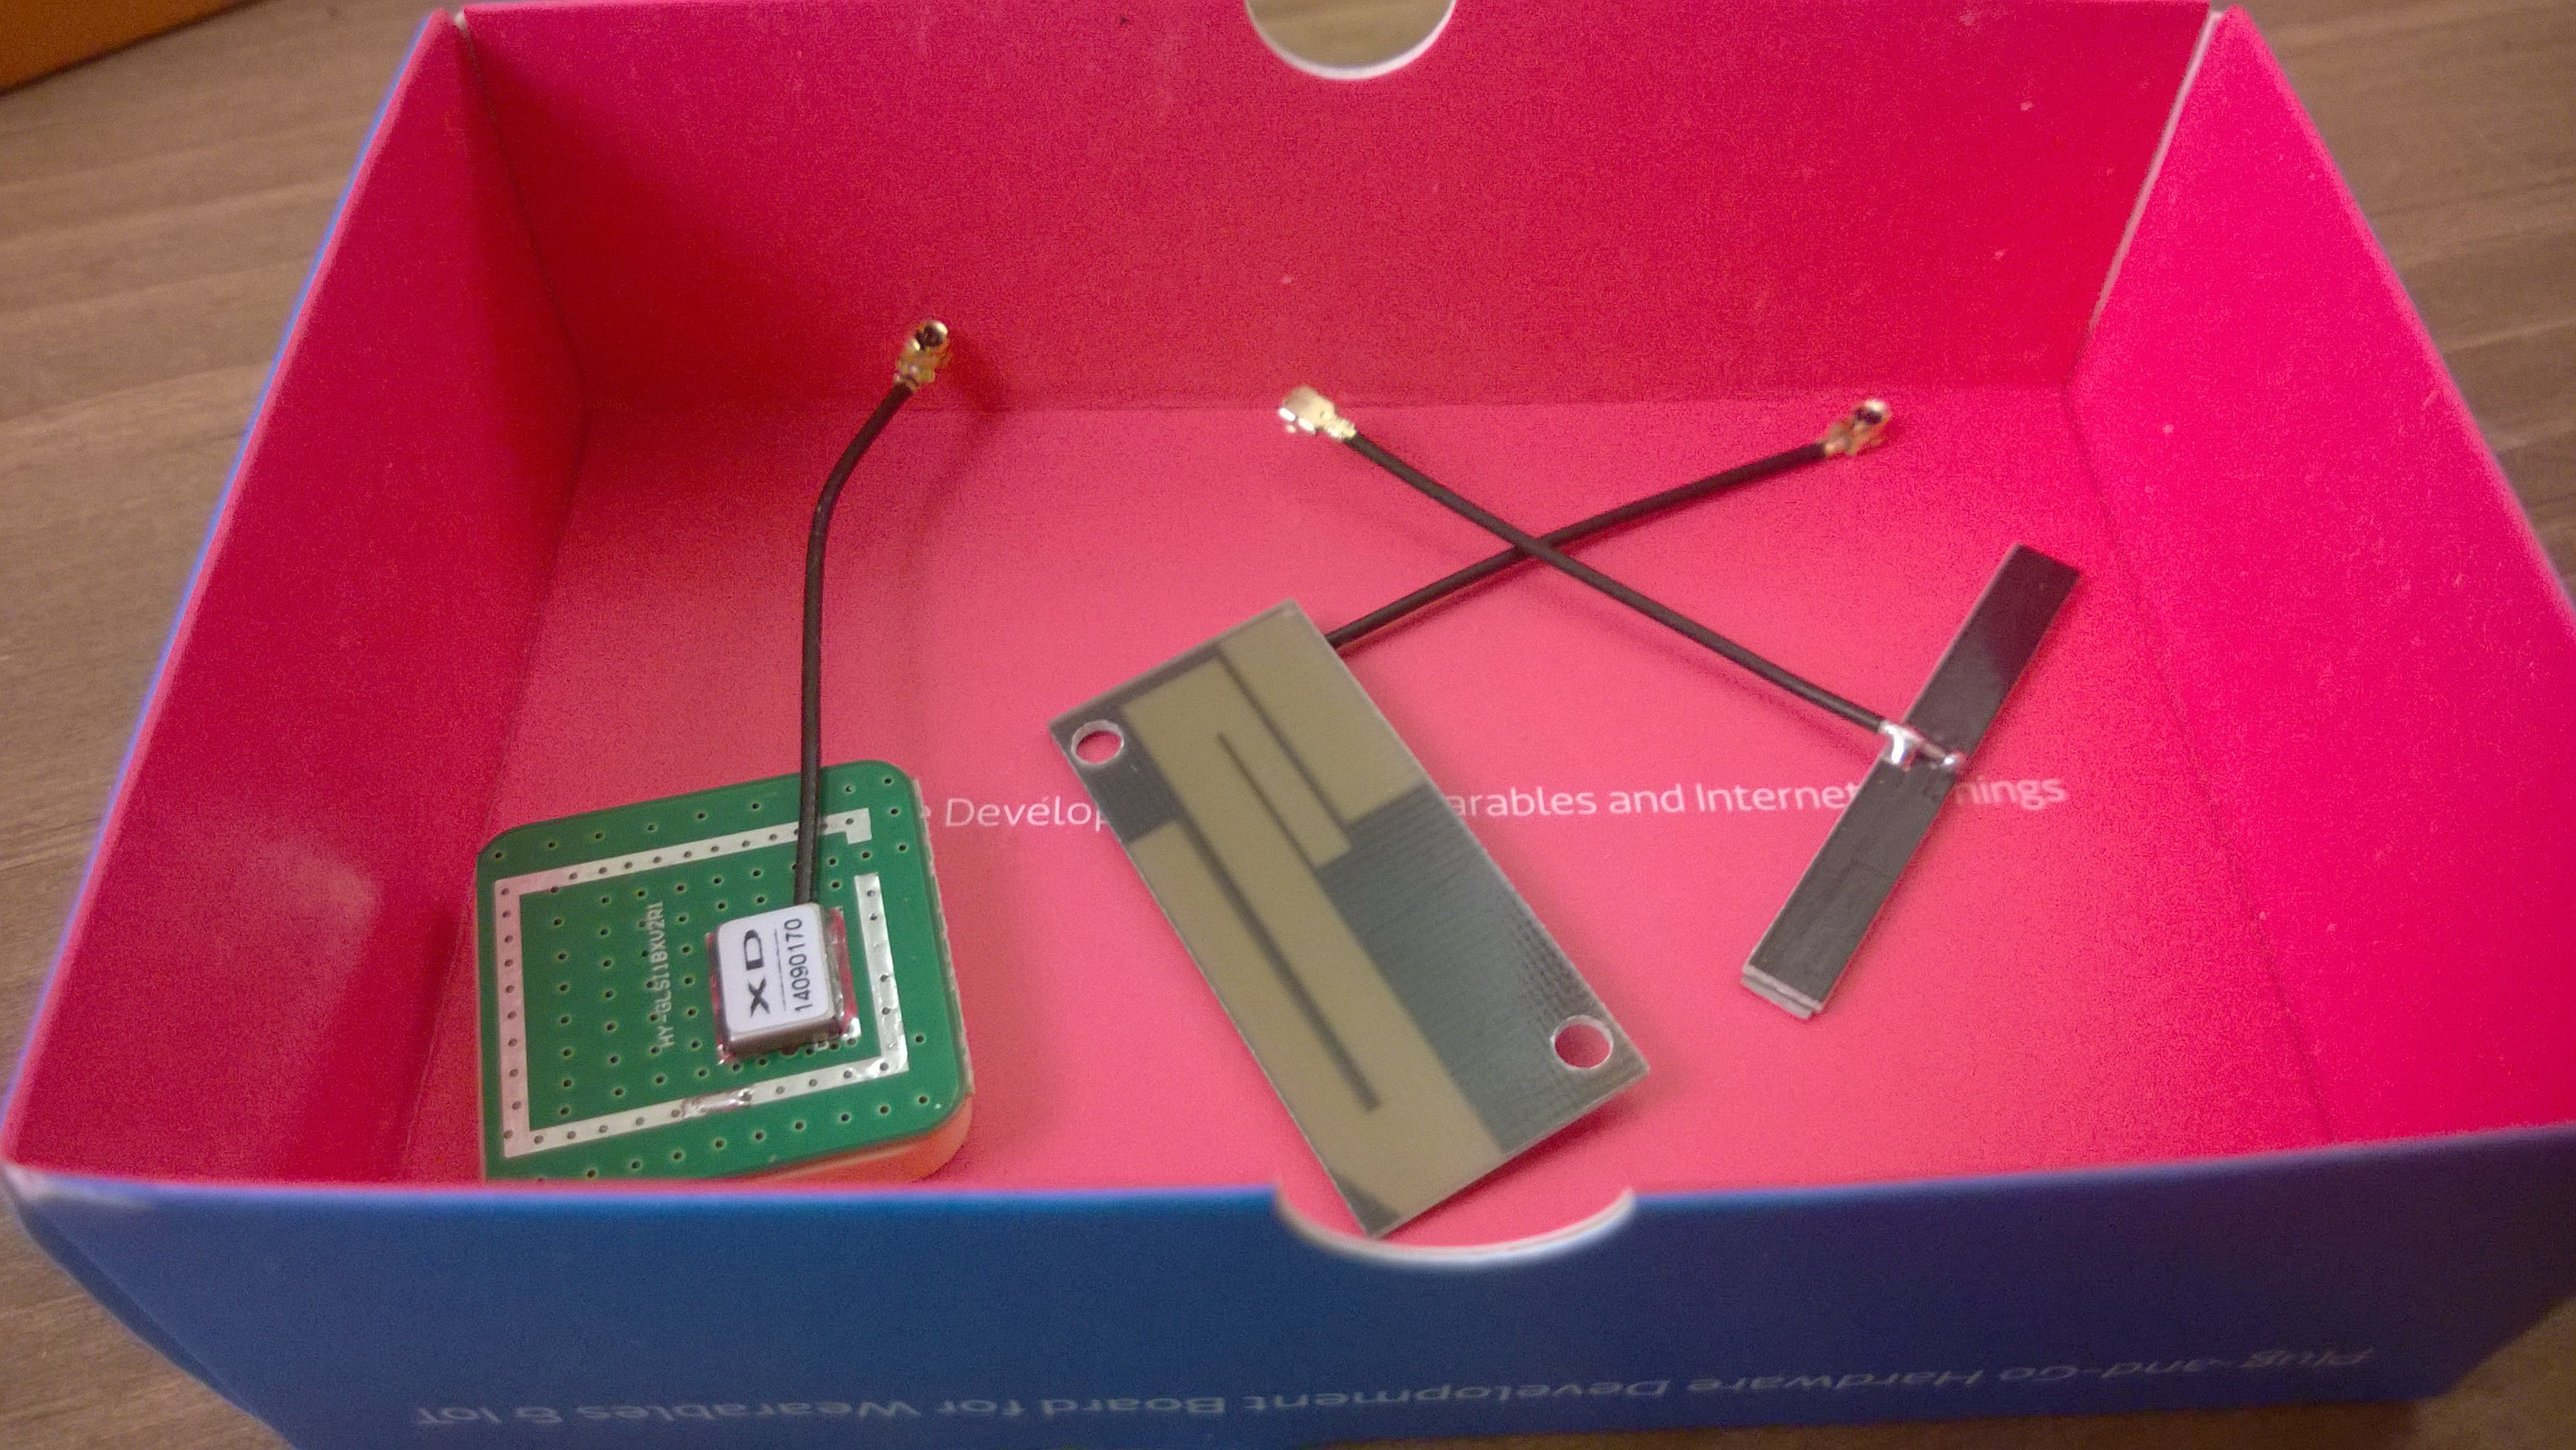 GPS, GSM Antenna, and WIFI/Bluetooth